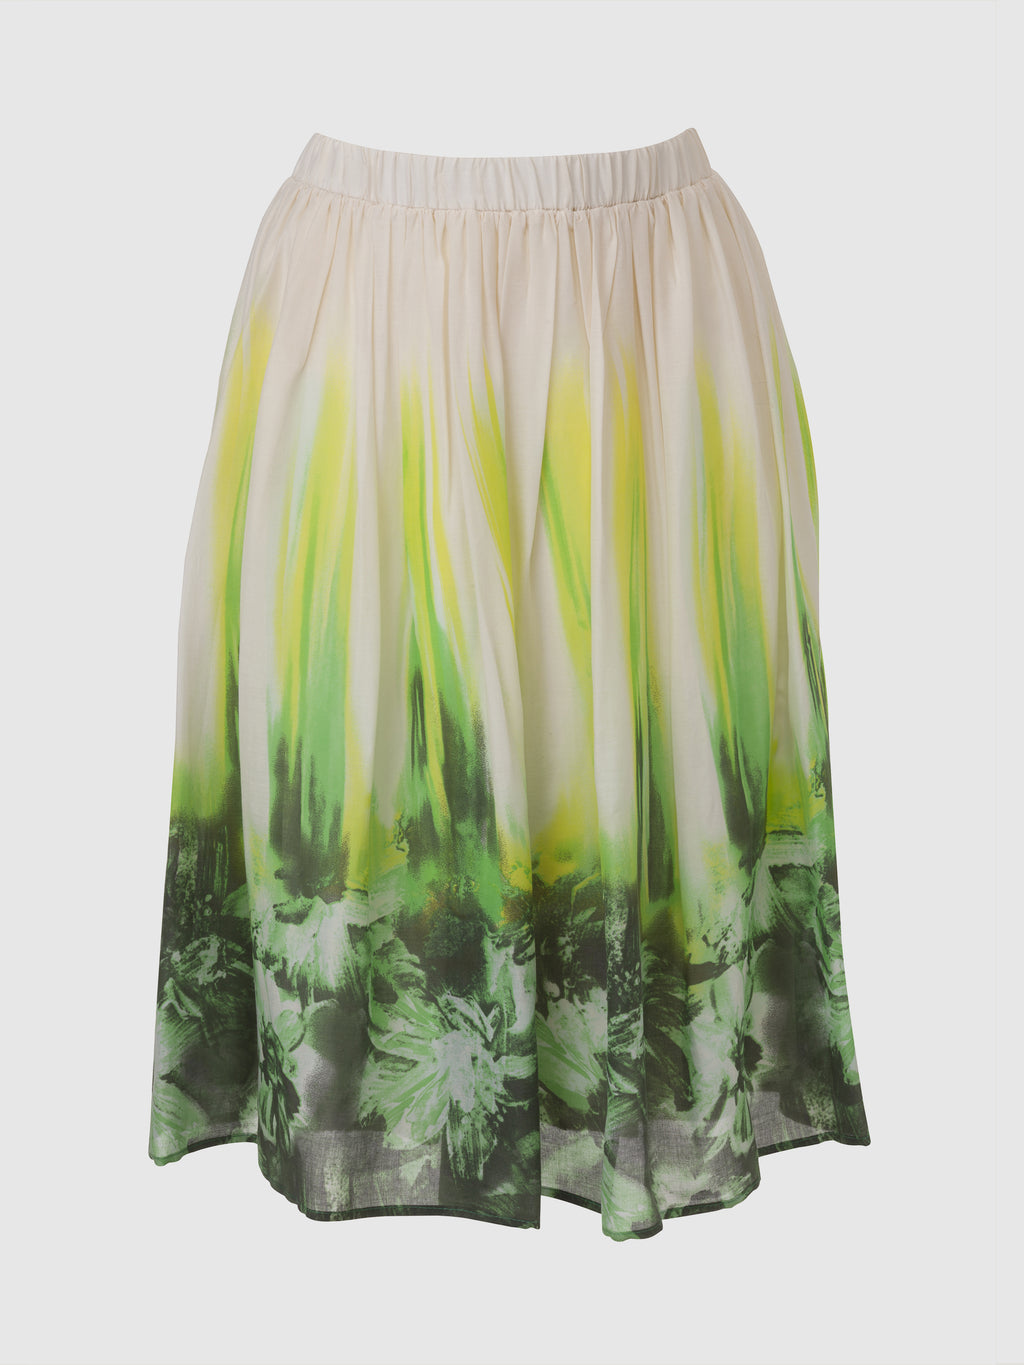 Knee length elastic gathered off white skirt with green leafy print around the hem and smudge yellow strikes going up to the waistline